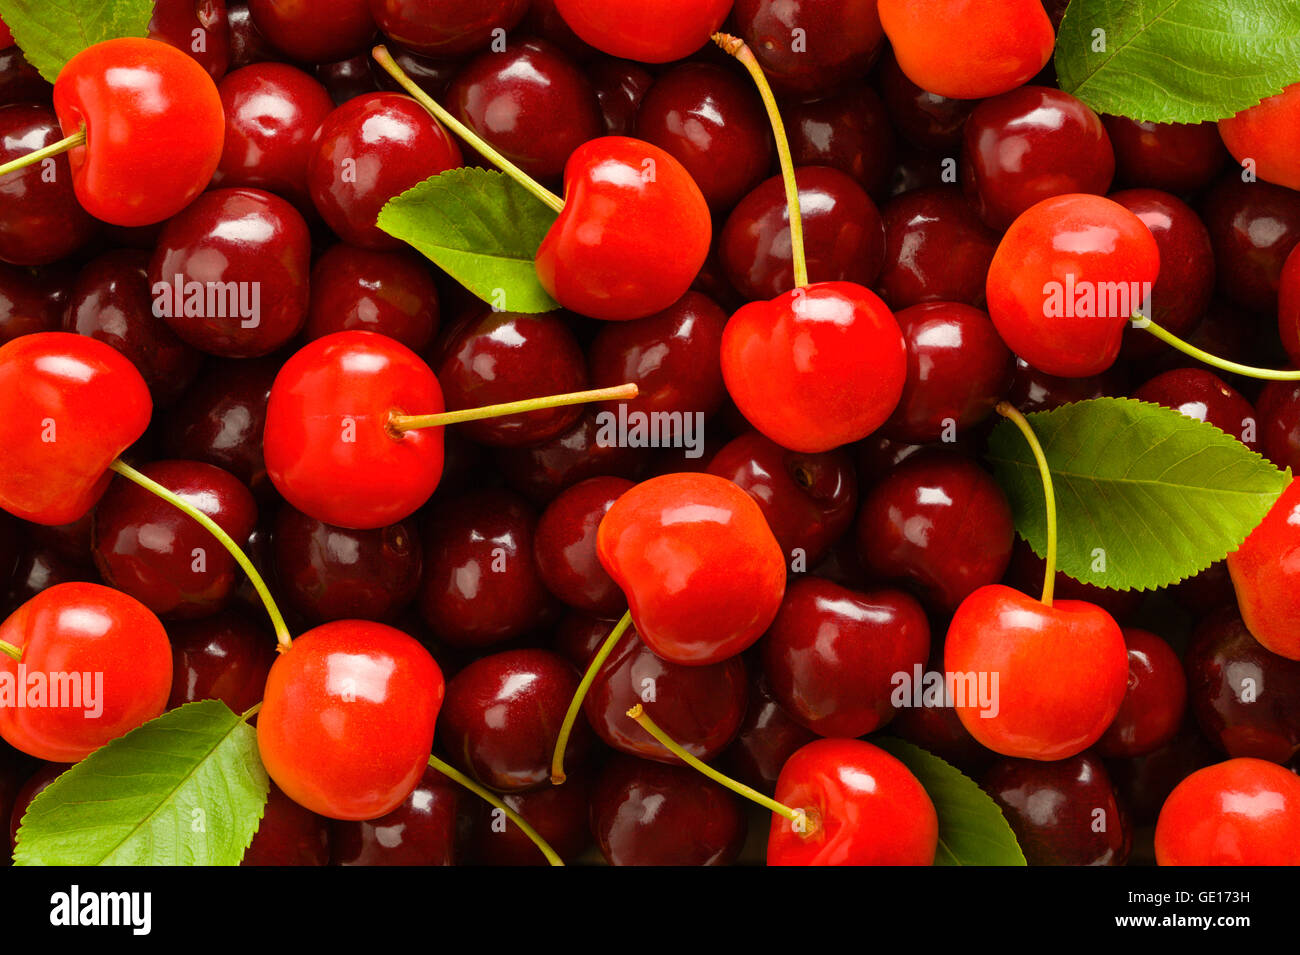 Clean Pile of Red Cherries with Green Leaves. - Stock Image